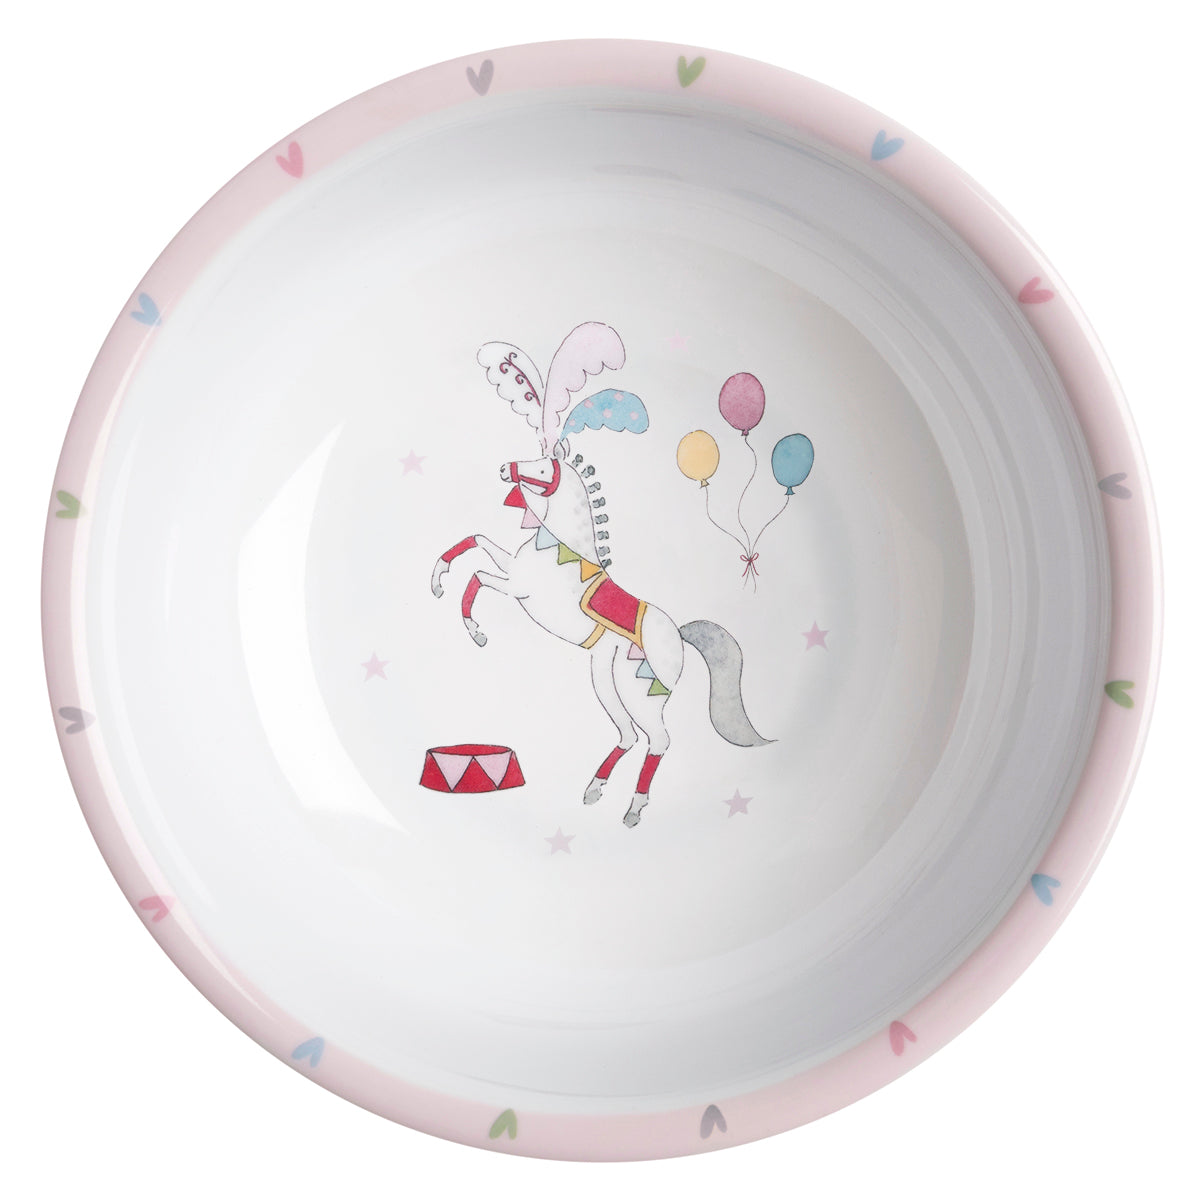 Fairground Ponies Childrens Melamine Bowl by Sophie Allport